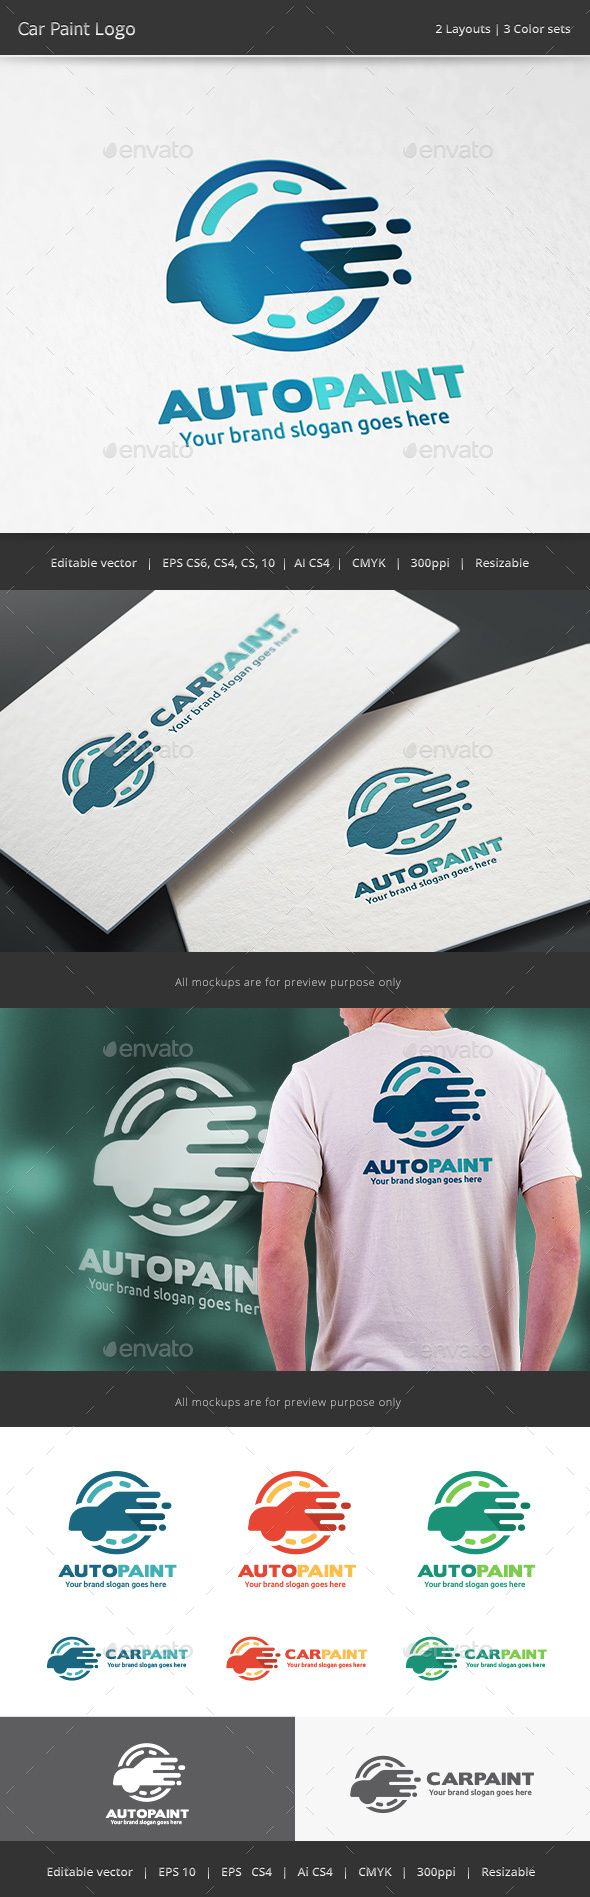 Car body sticker design eps - Car Paint Logo Vector Eps Wax Wash Available Here Https